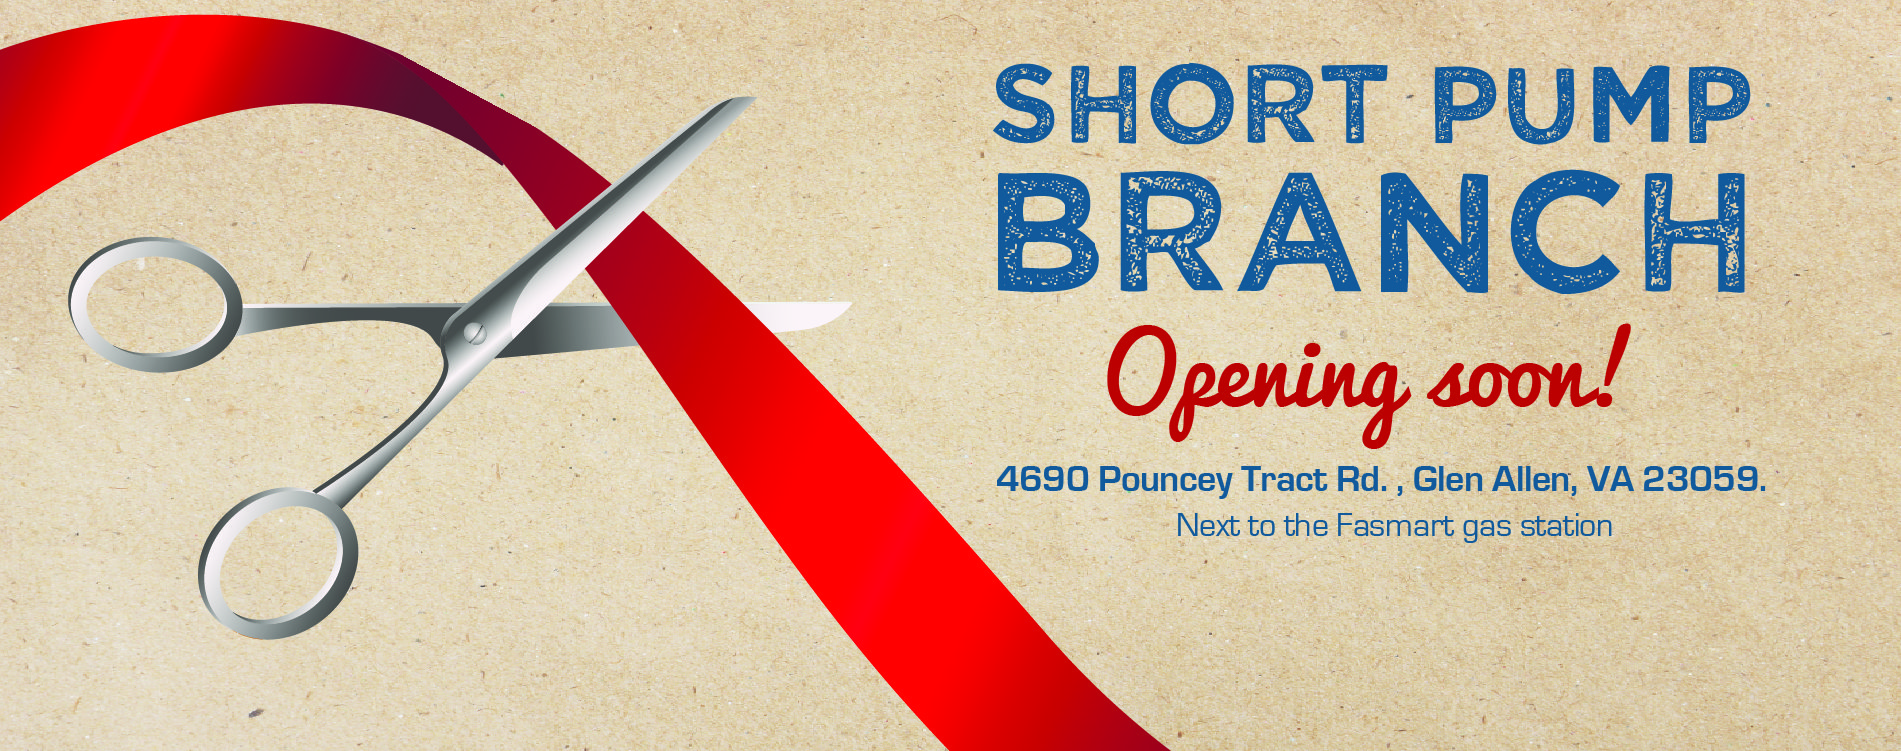 Coming Soon. The Short Pump Branch